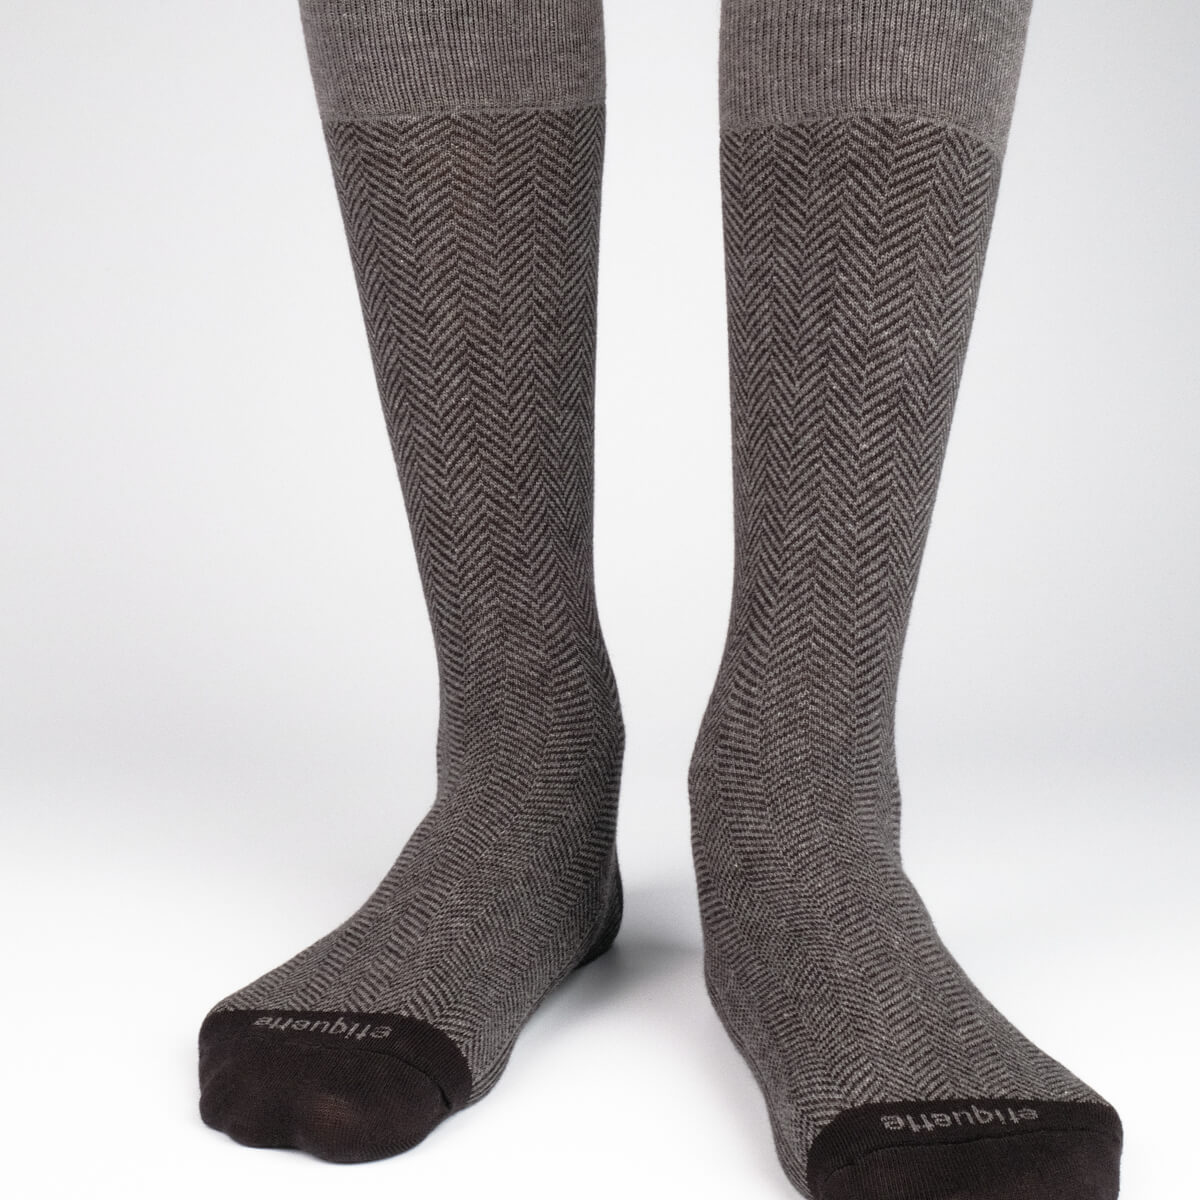 Mens Socks - Herring With A Bone - Grey⎪Etiquette Clothiers